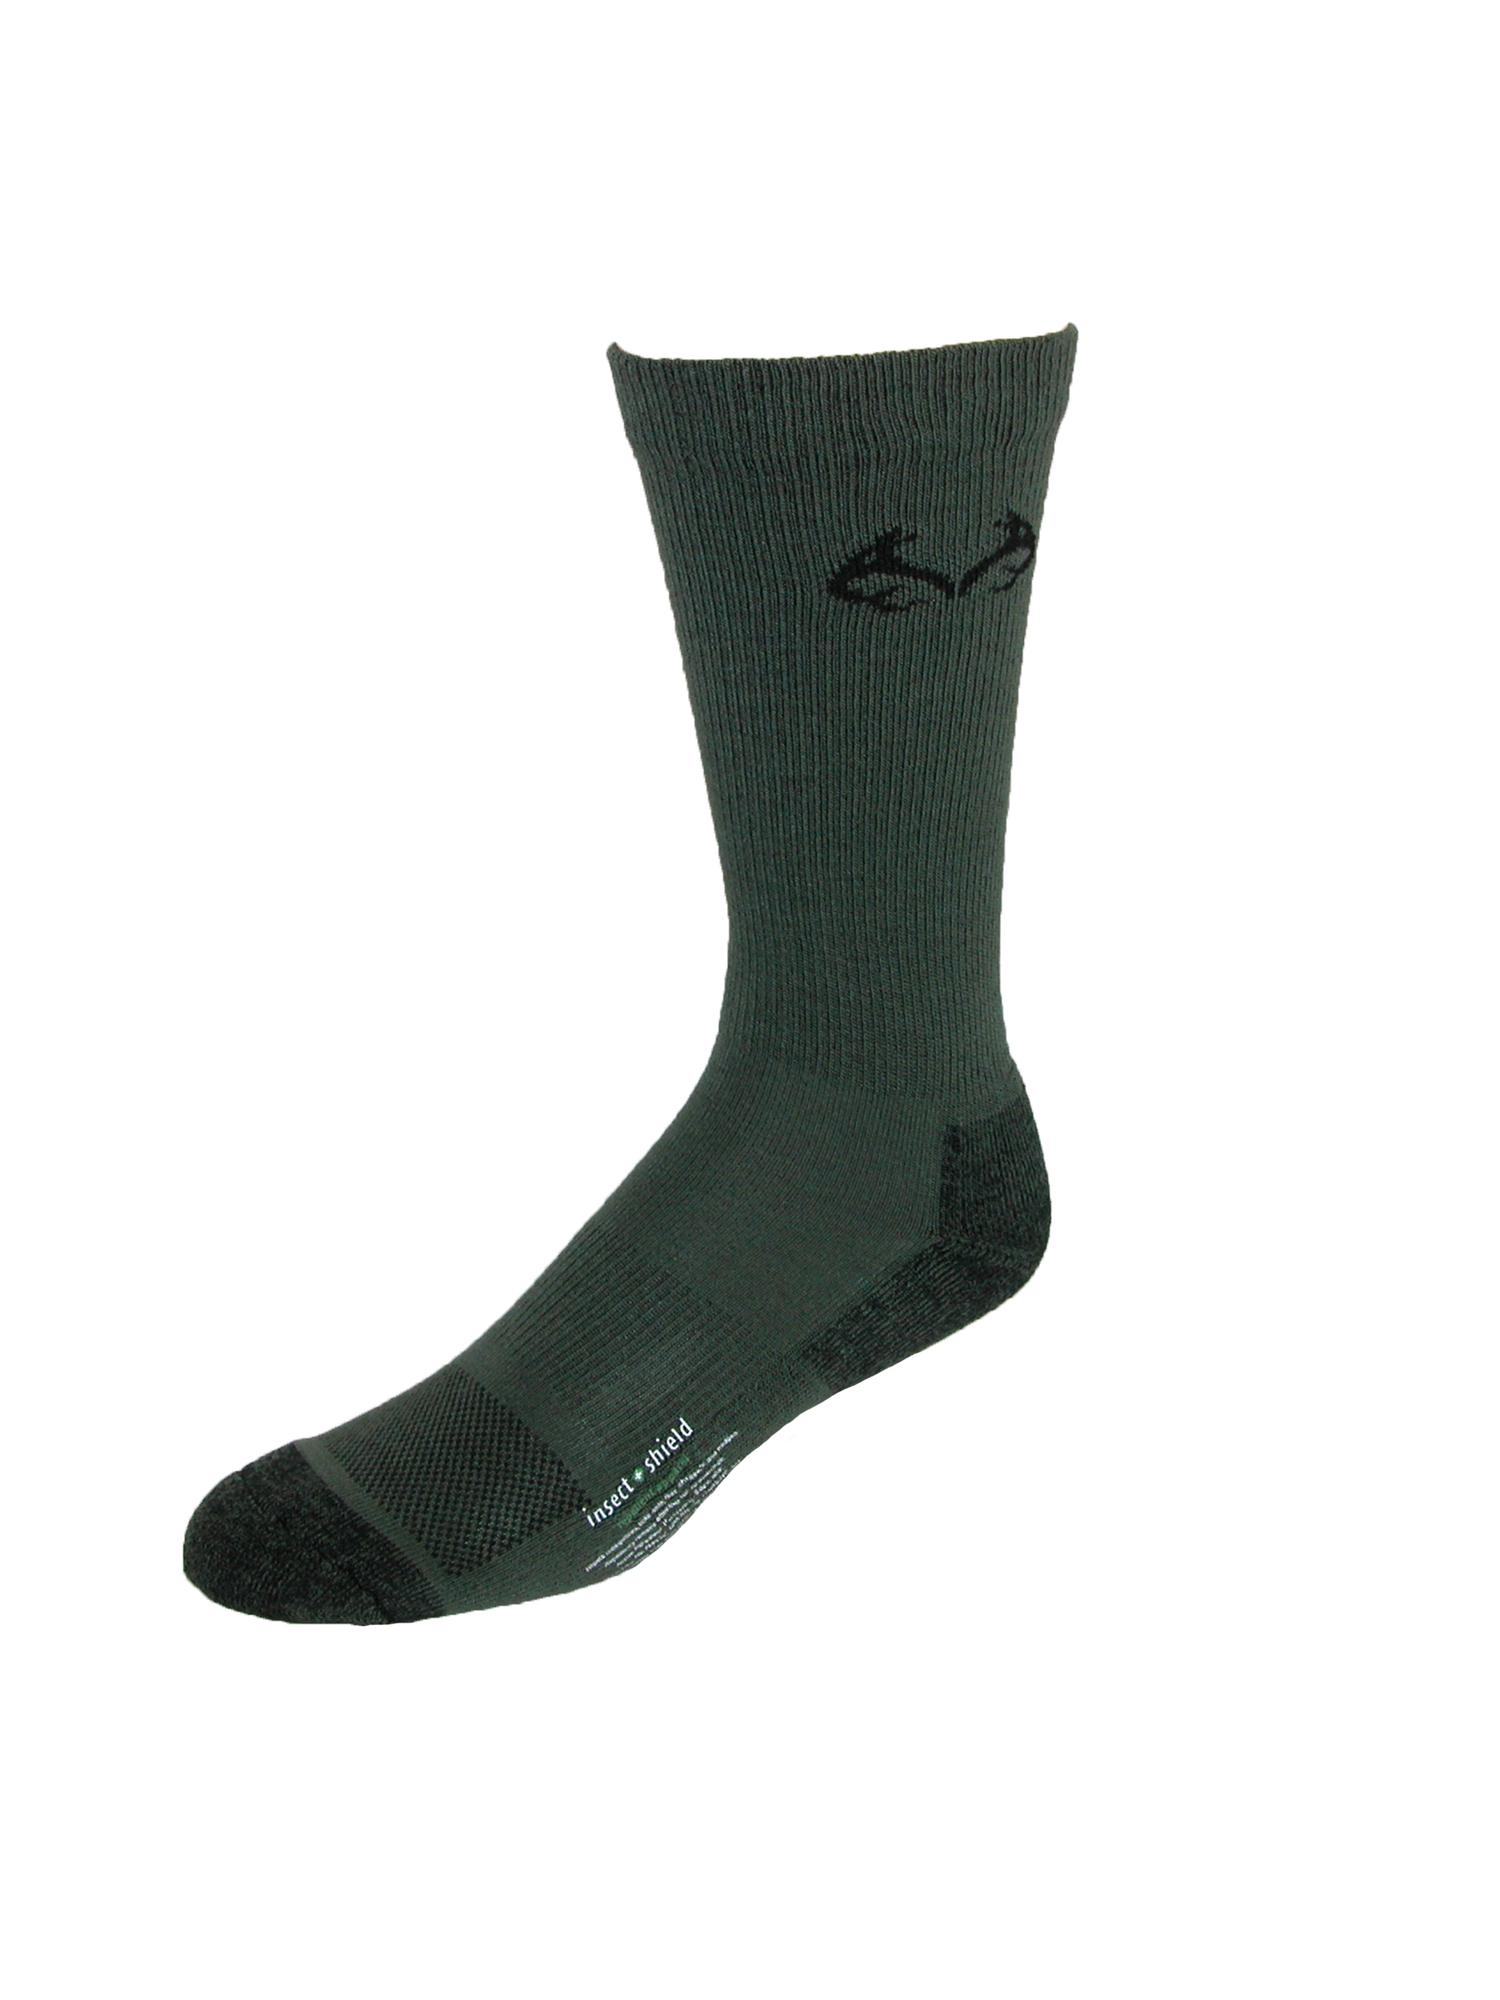 Insect Repellent Technology Size L No Fly Zone Realtree Cotton Crew Socks